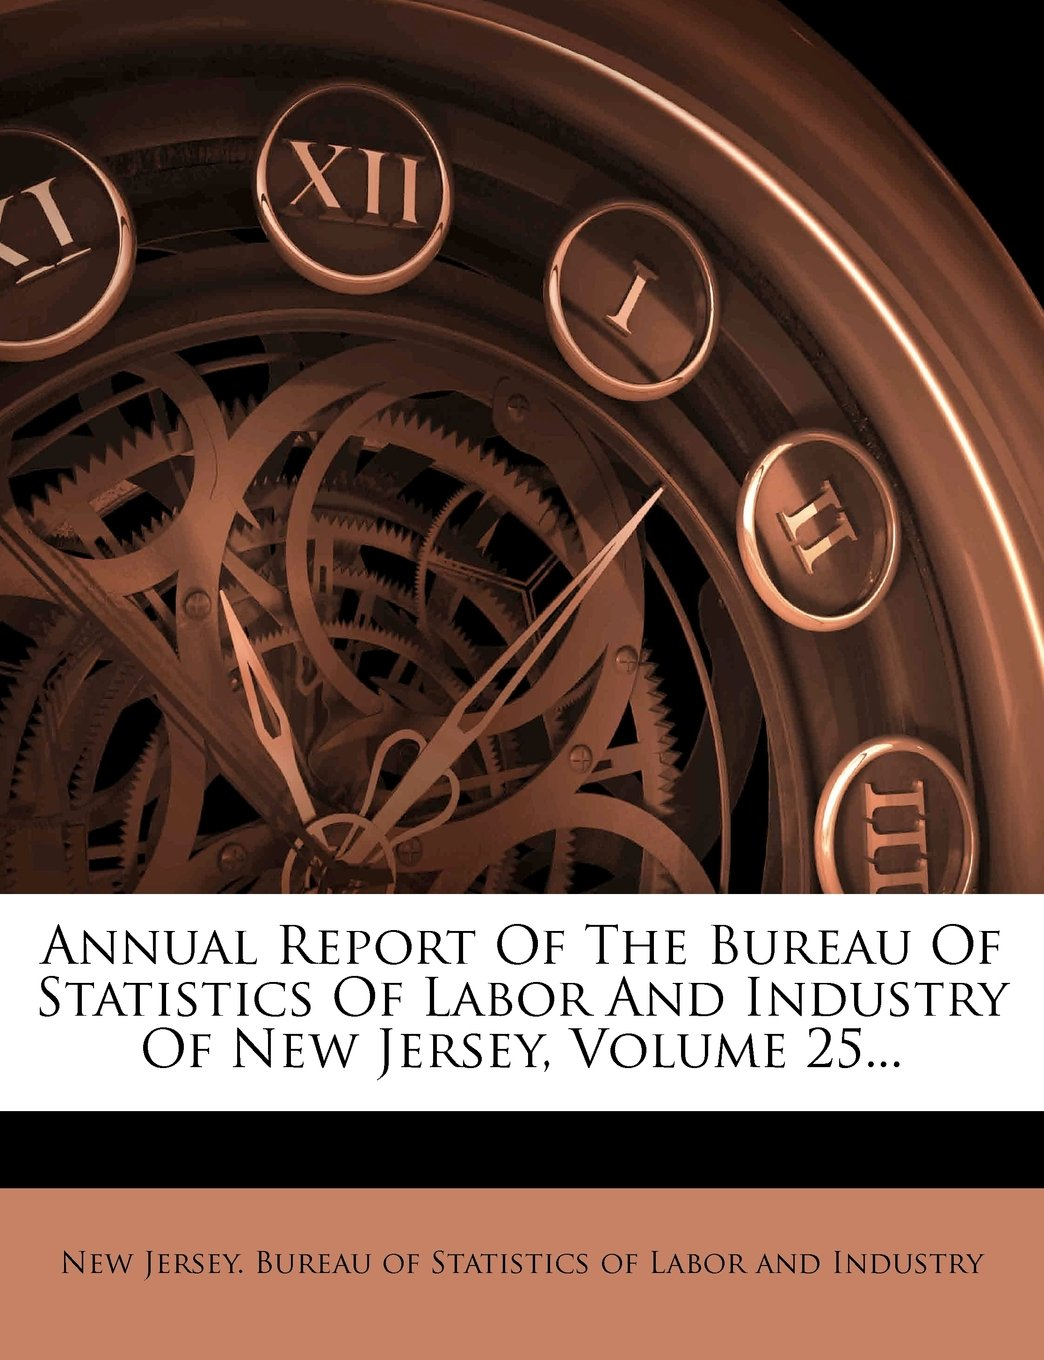 Annual Report Of The Bureau Of Statistics Of Labor And Industry Of New Jersey, Volume 25... pdf